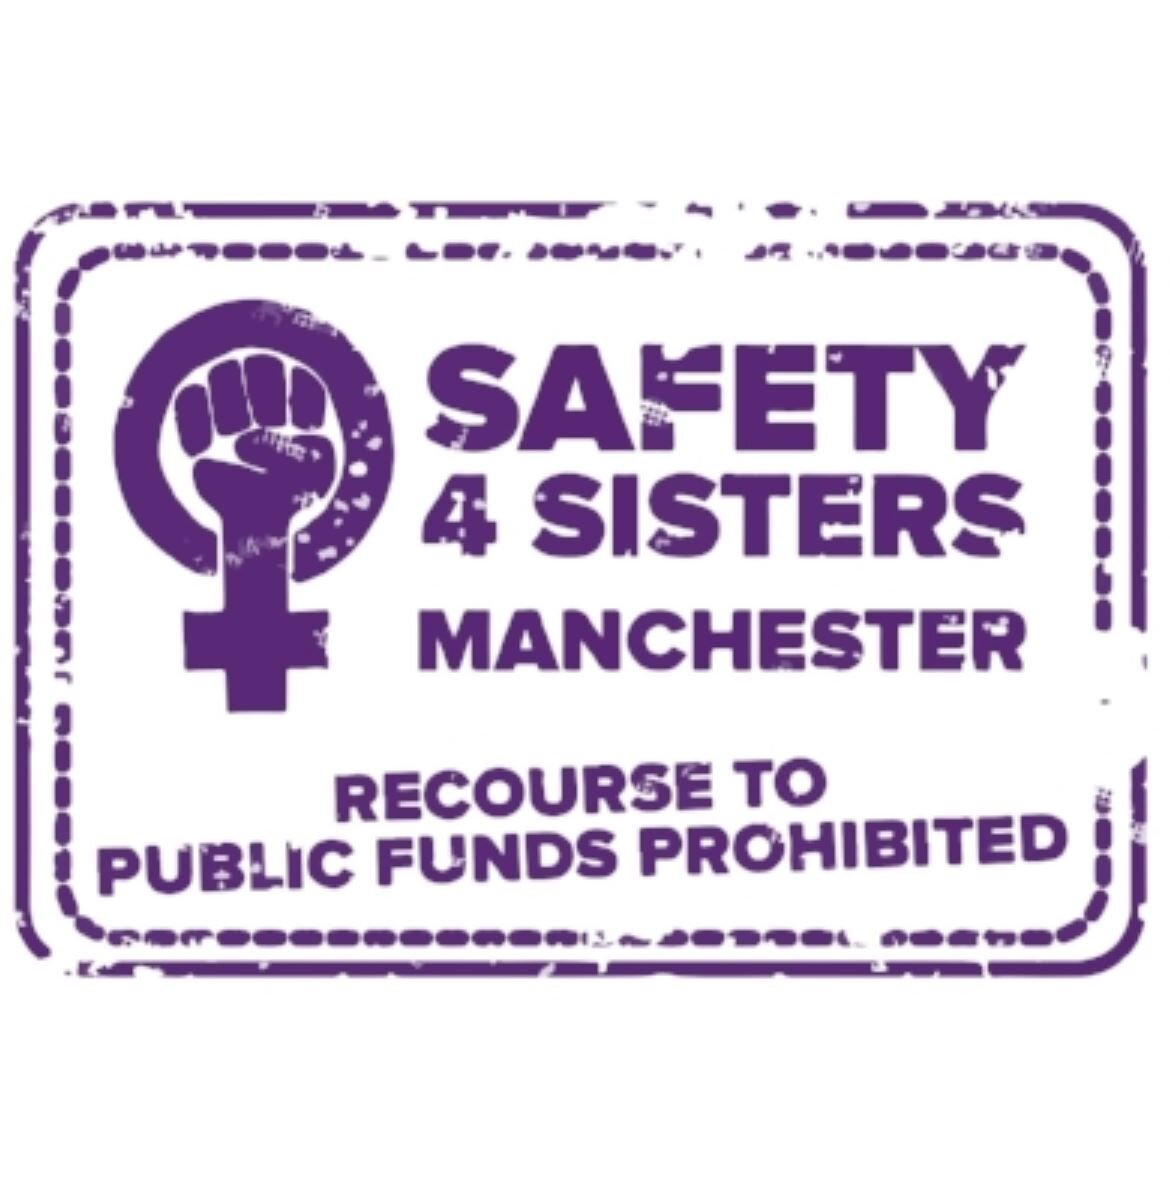 SAFETY4SISTERS